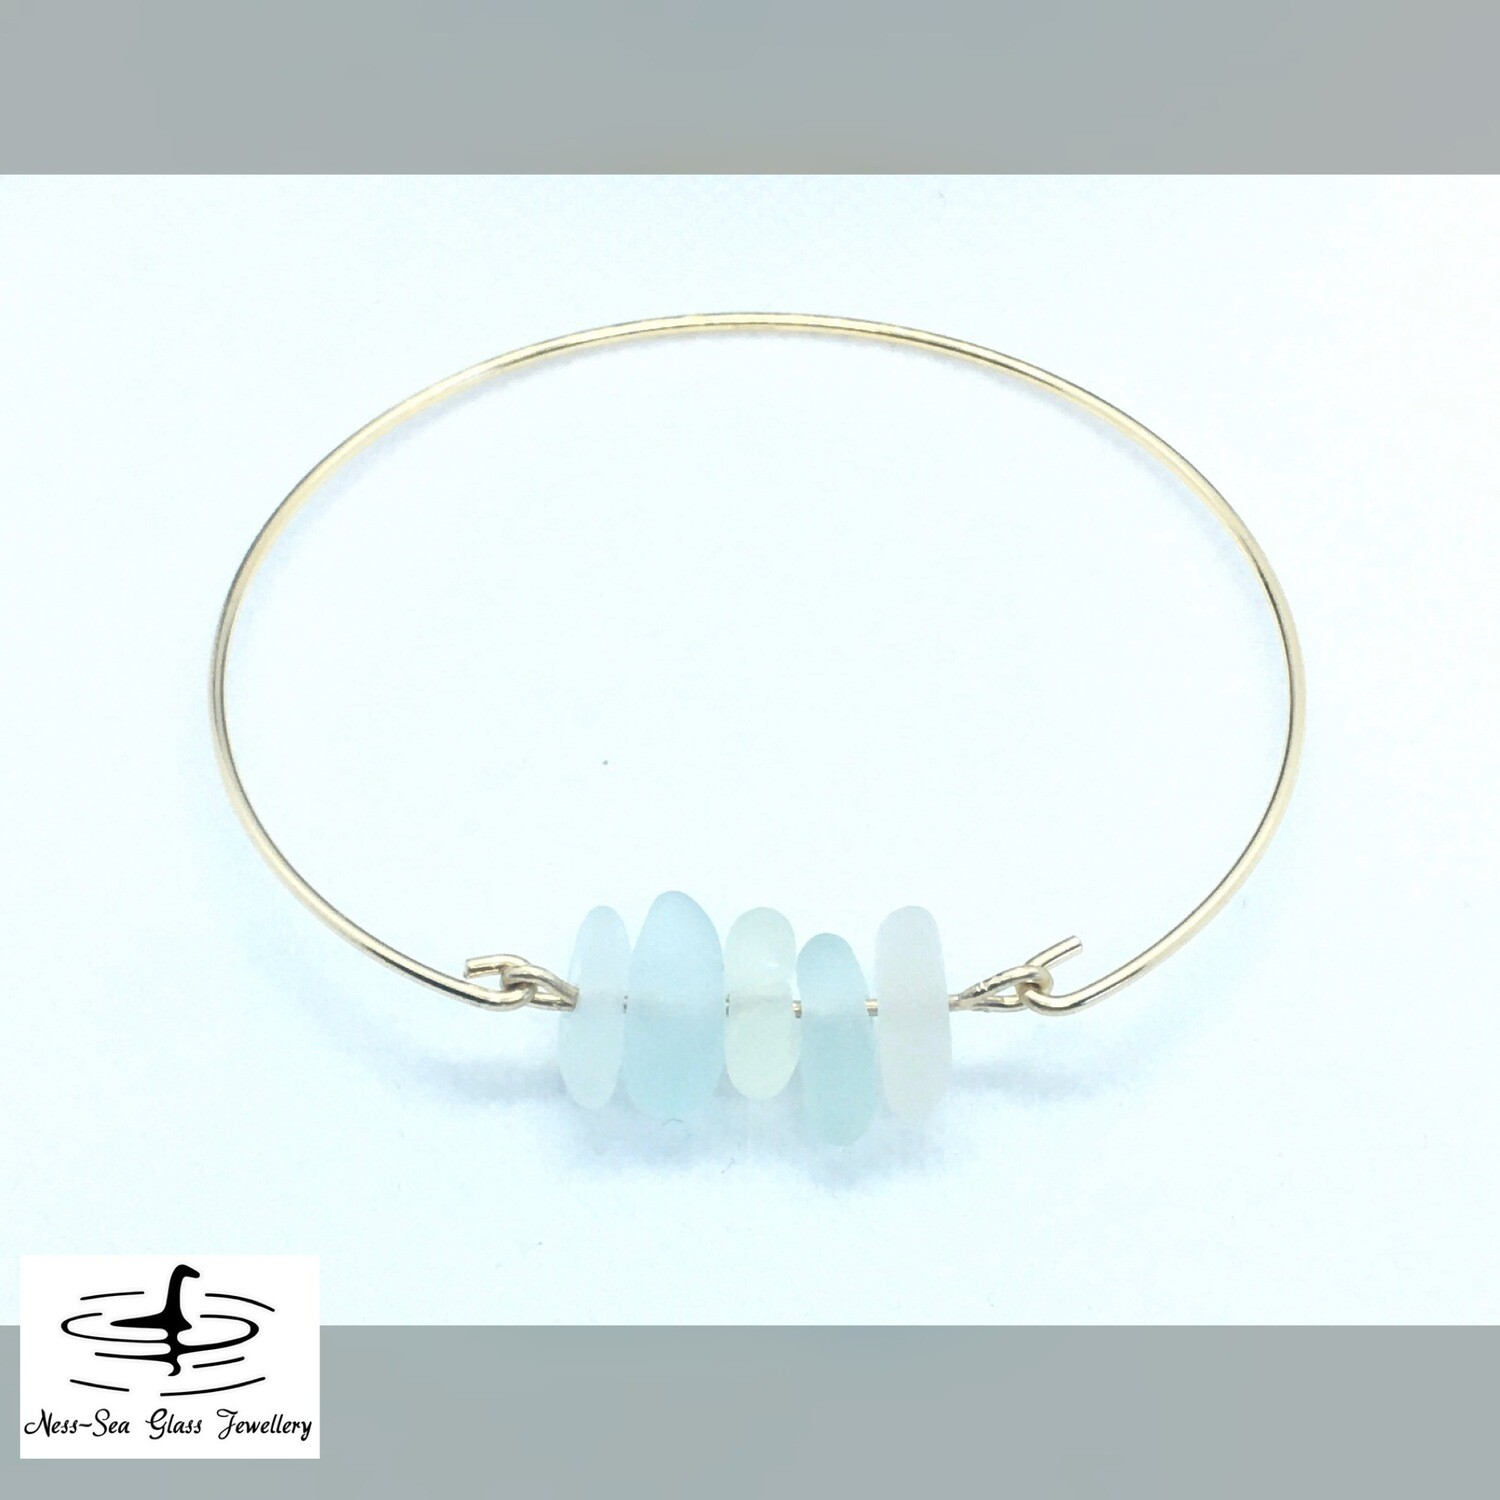 Clear, Blue and Green Loch Ness Sea Glass 14k Gold Filled Bracelet